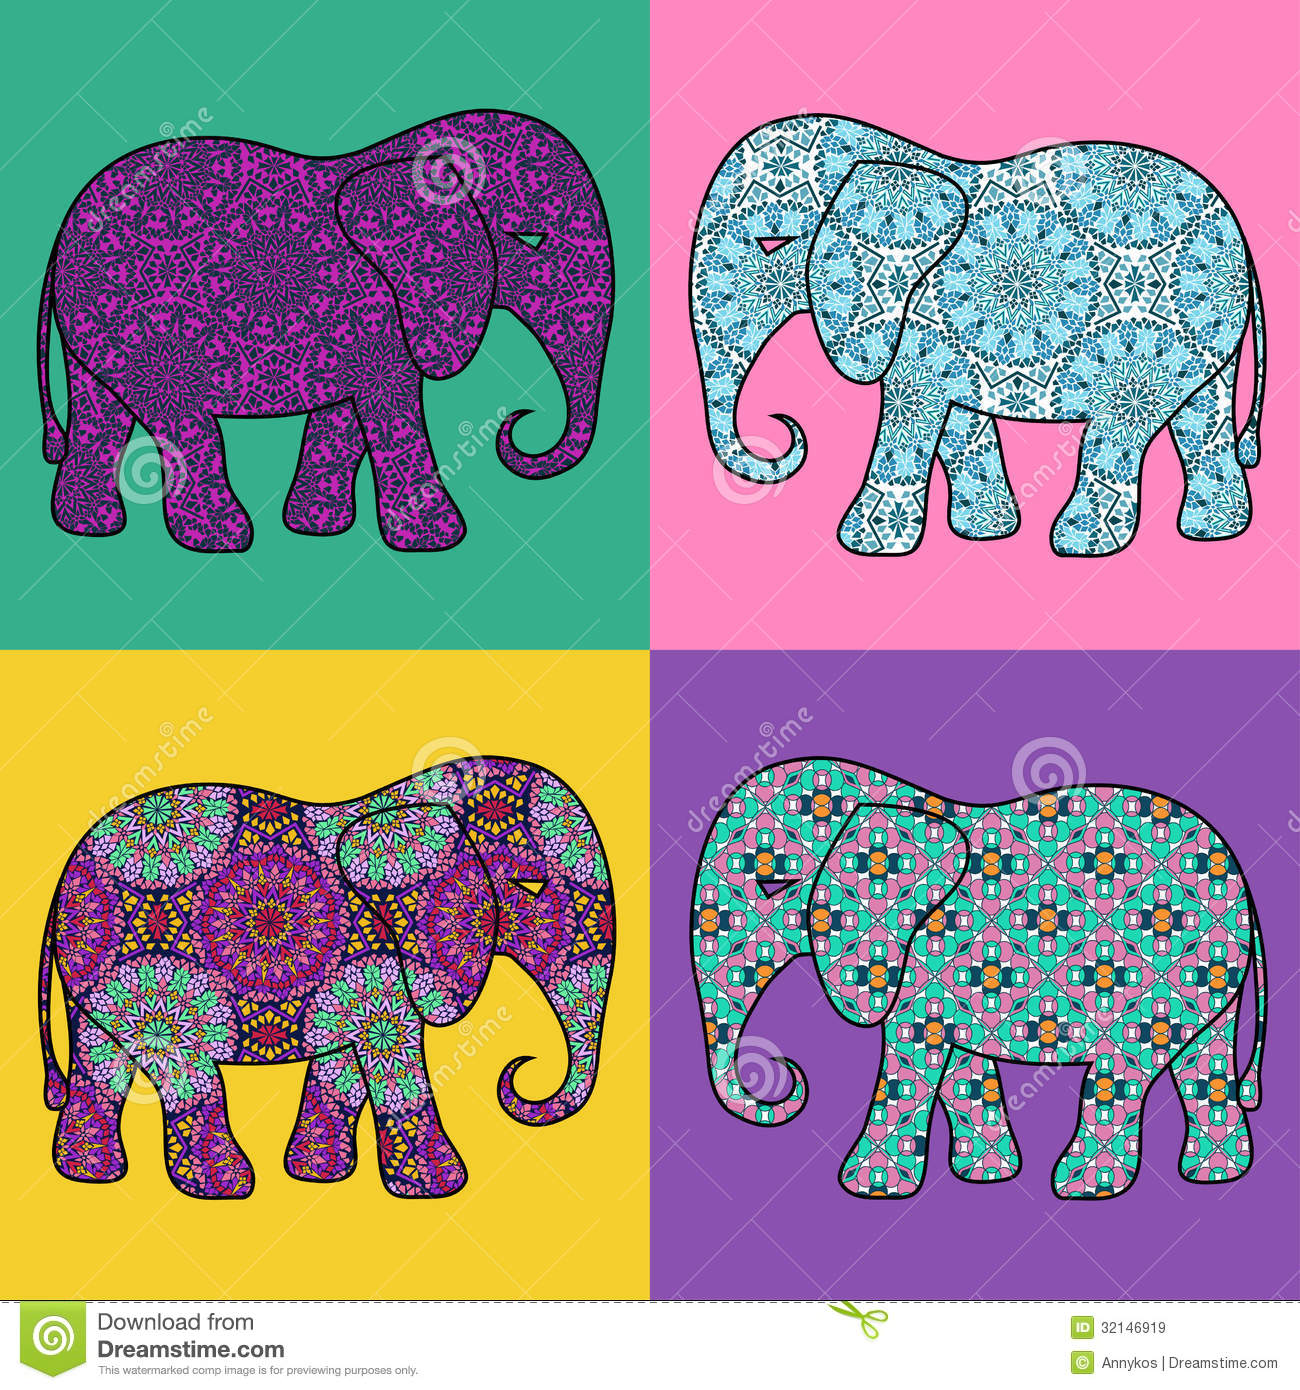 Colorful Elephant Design Four isolated colorful mosaic